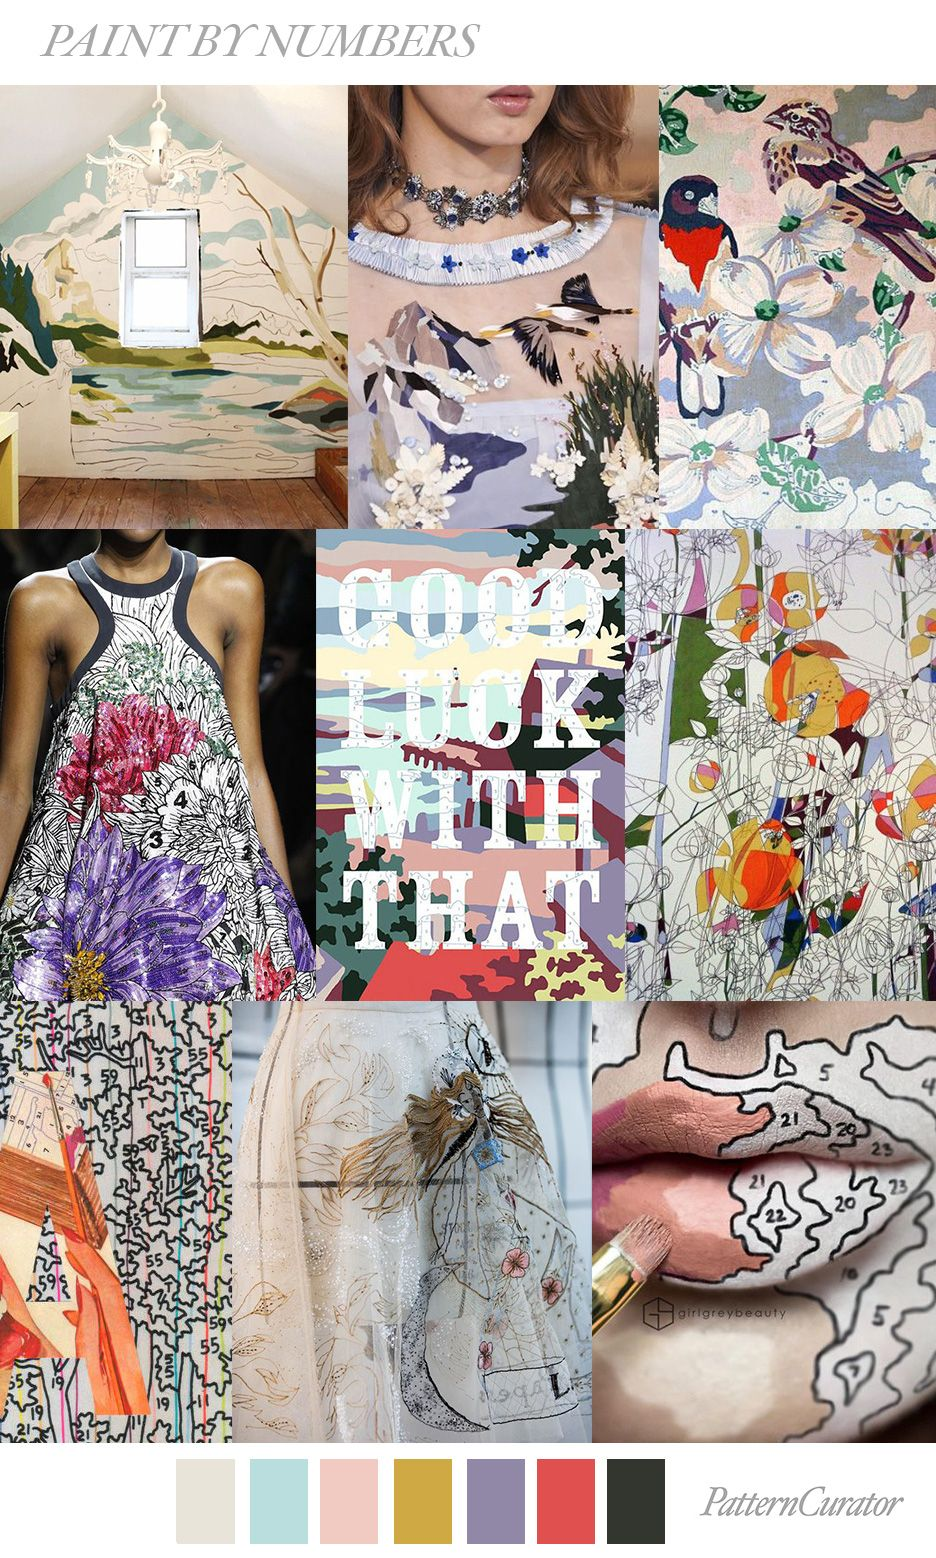 PAINT BY NUMBERS by PatternCurator SS19 | SS 19 | Today's ...